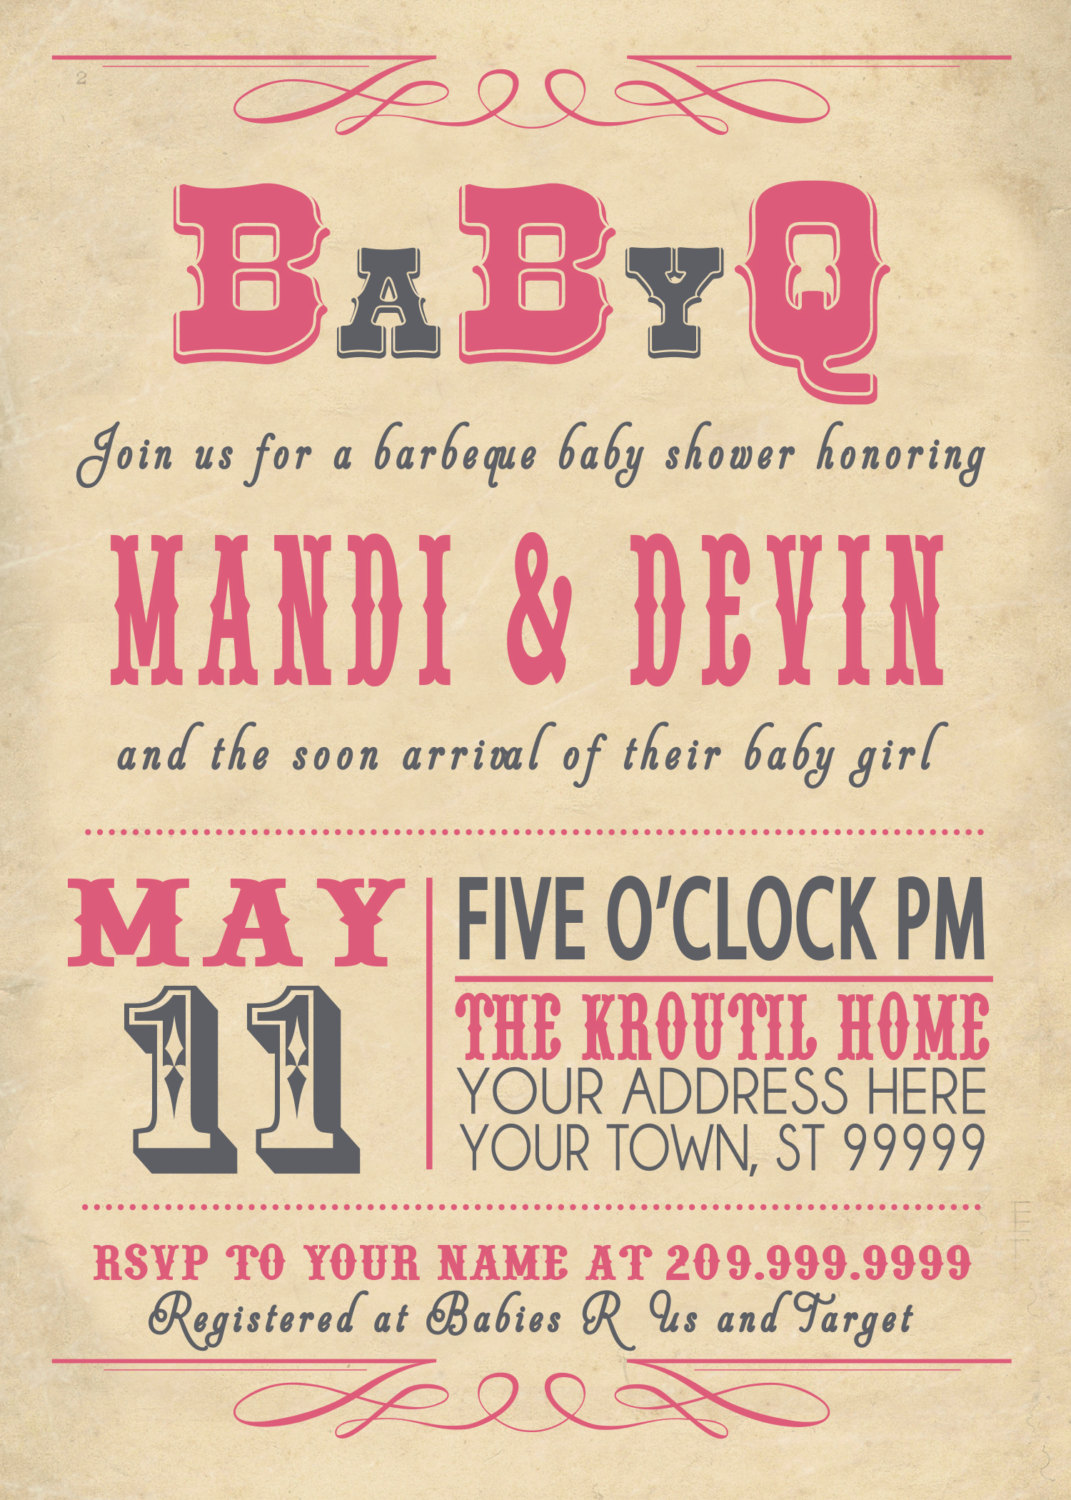 Full Size of Baby Shower:delightful Baby Shower Invitation Wording Picture Designs Cheap Baby Shower Favors With Baby Boy Shower Favors Plus Baby Shower Outfit Guest Together With Cheap Baby Shower Gifts As Well As How To Plan A Baby Shower And Baby Shower Images